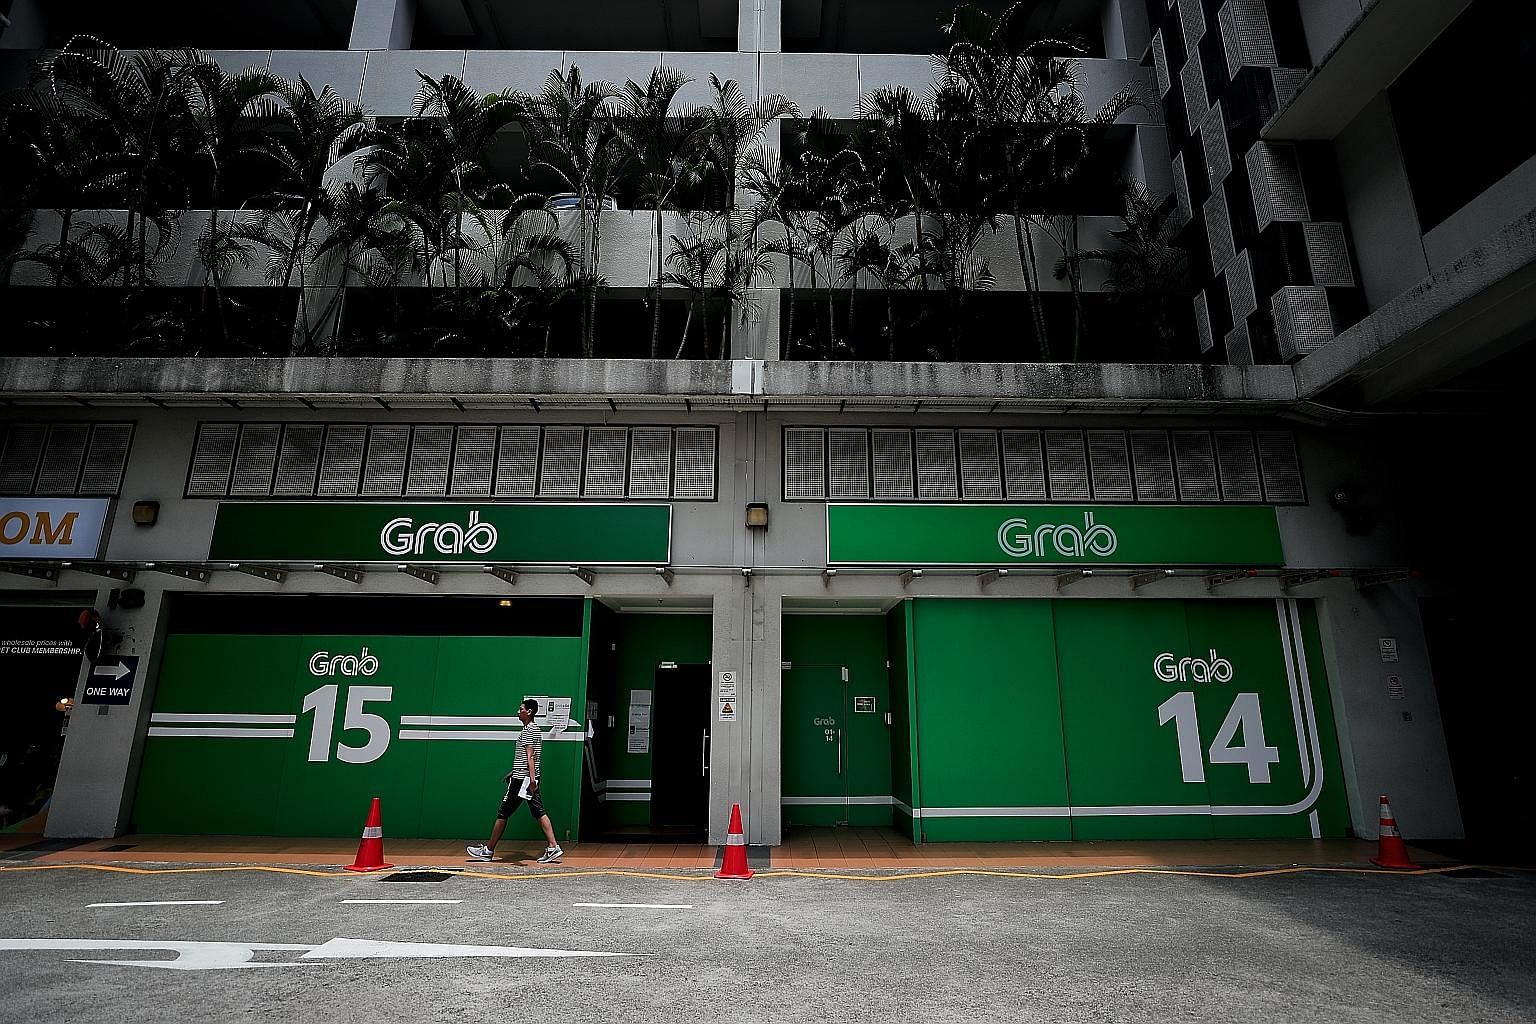 On Dec 17, 2017, GrabCar sent 120,747 marketing e-mails to customers that contained the name and mobile number of another customer.